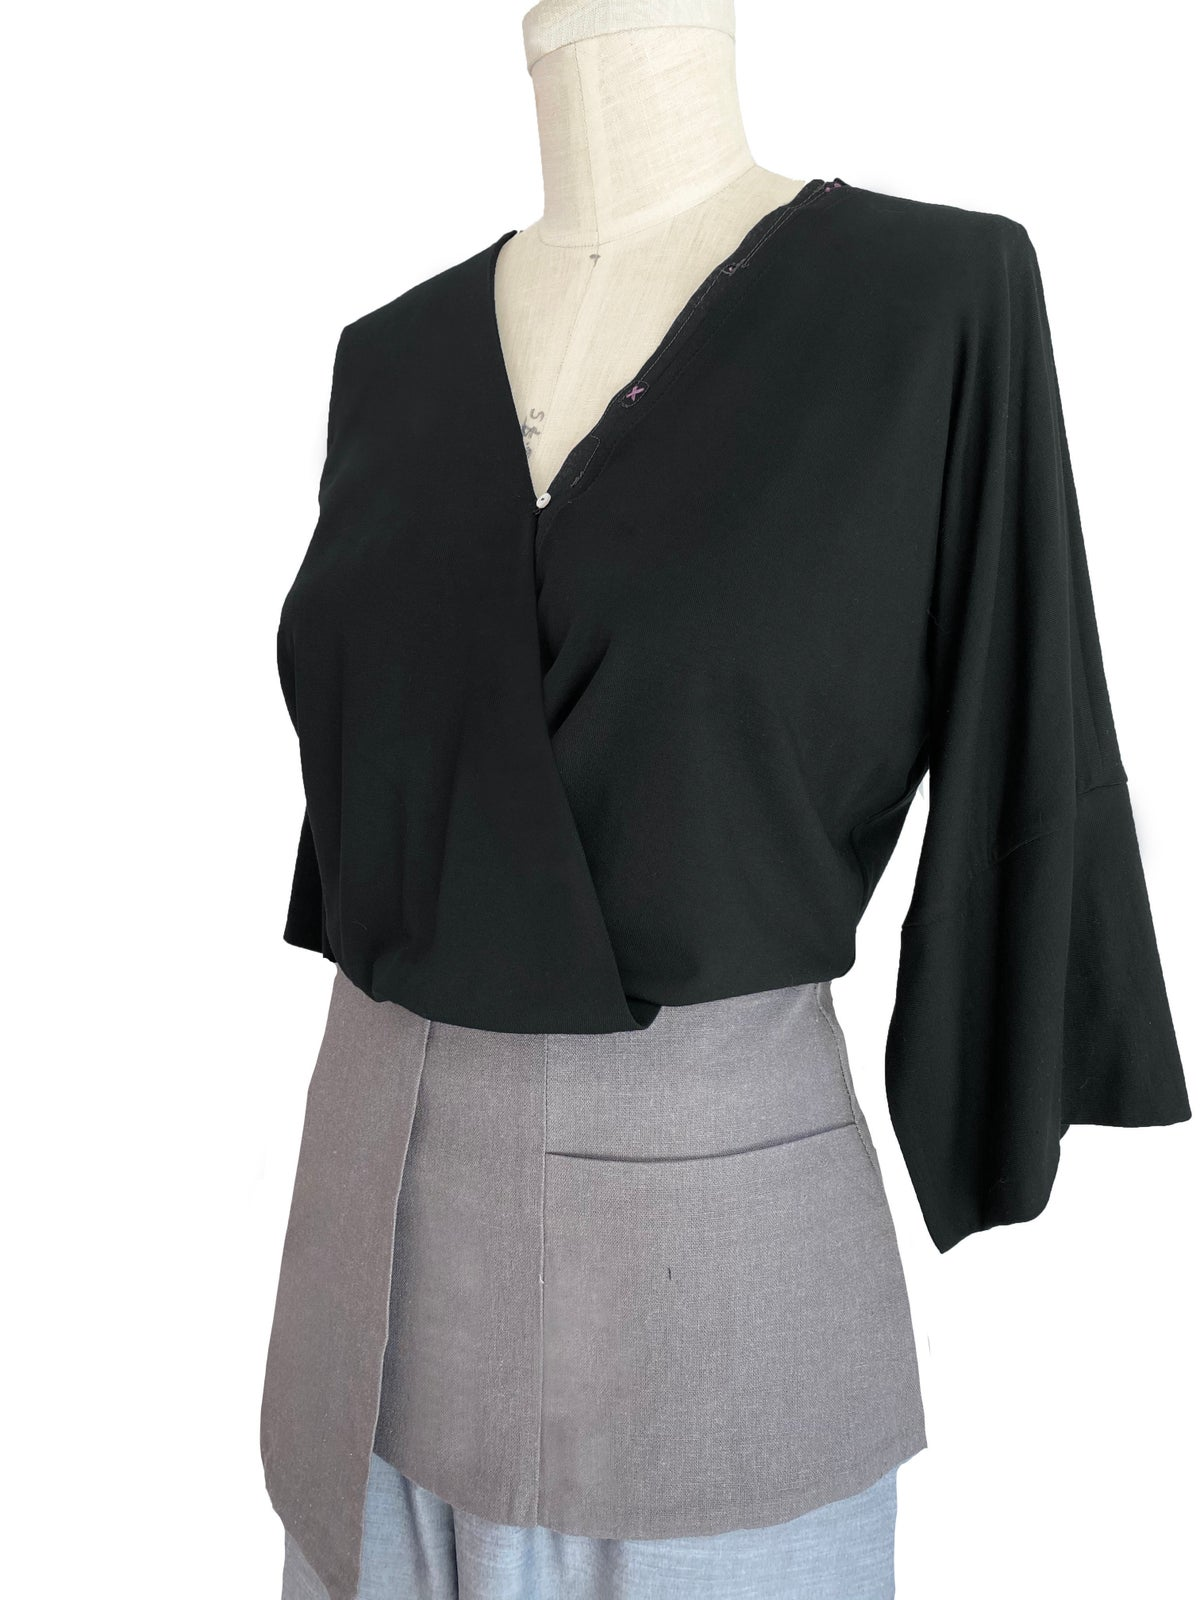 Image of Asher top in black